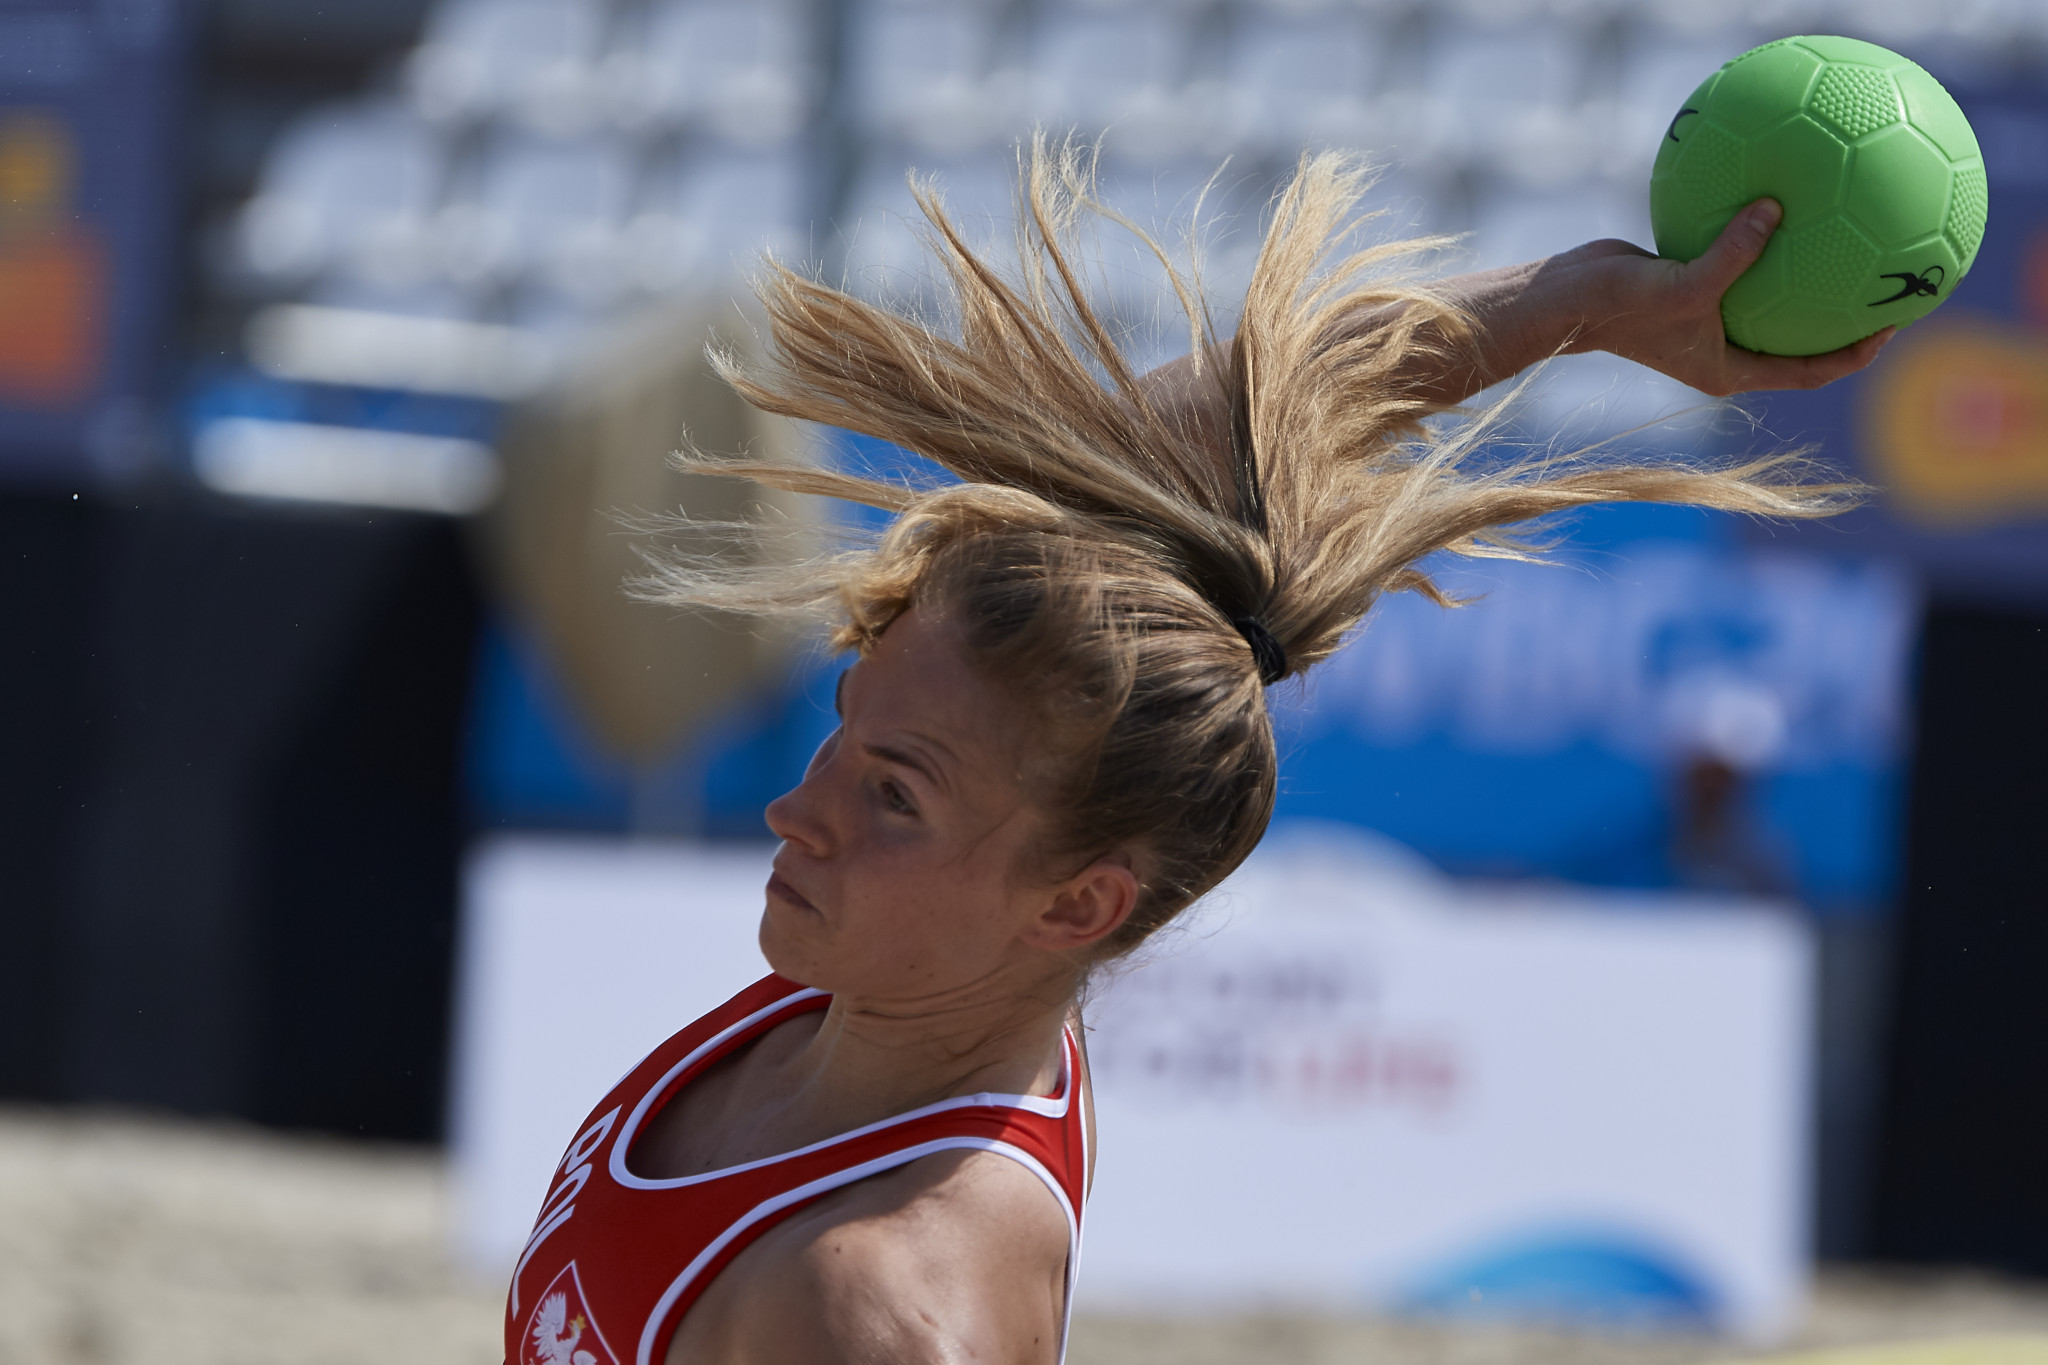 Beach handball competition has begun before the Opening Ceremony tomorrow ©ANOC World Beach Games